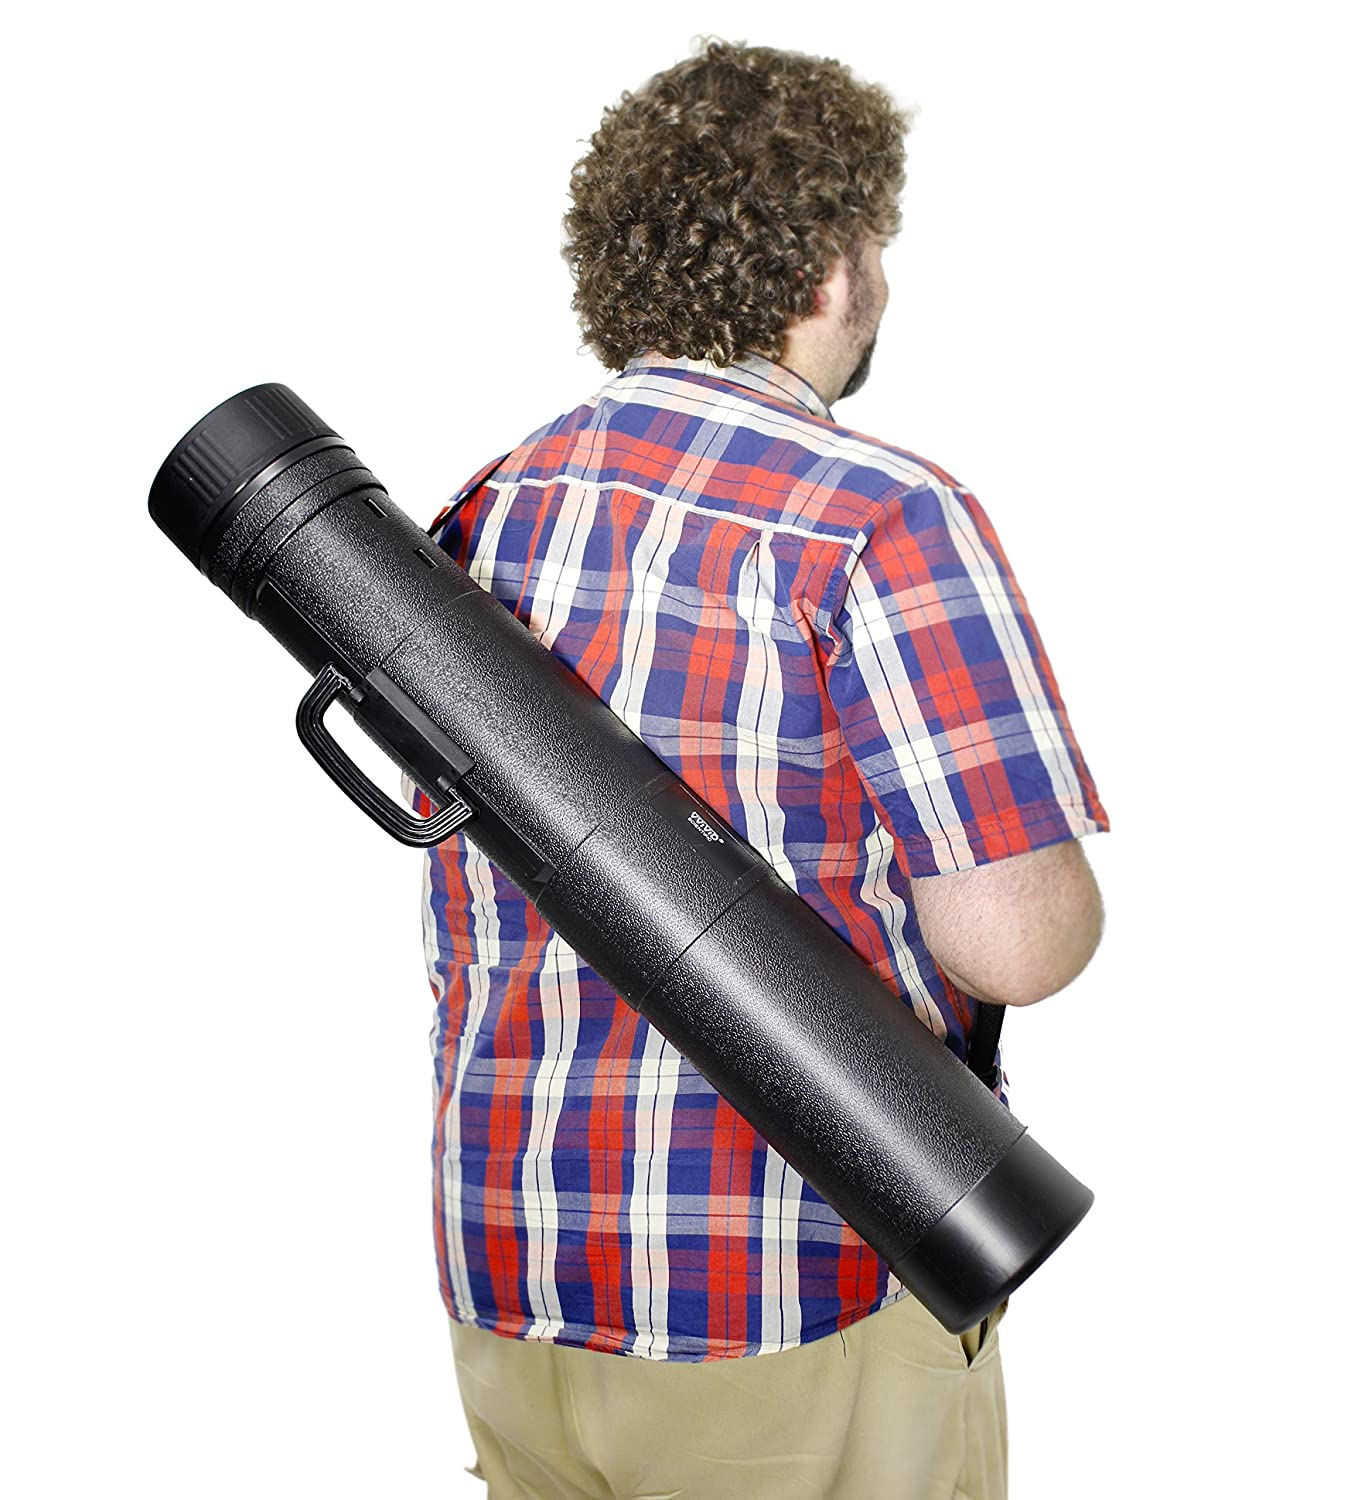 Artwork and Document Carrying Tube VViViD Heavy-Duty Black Plastic 31-49 Inch Length Telescoping Poster